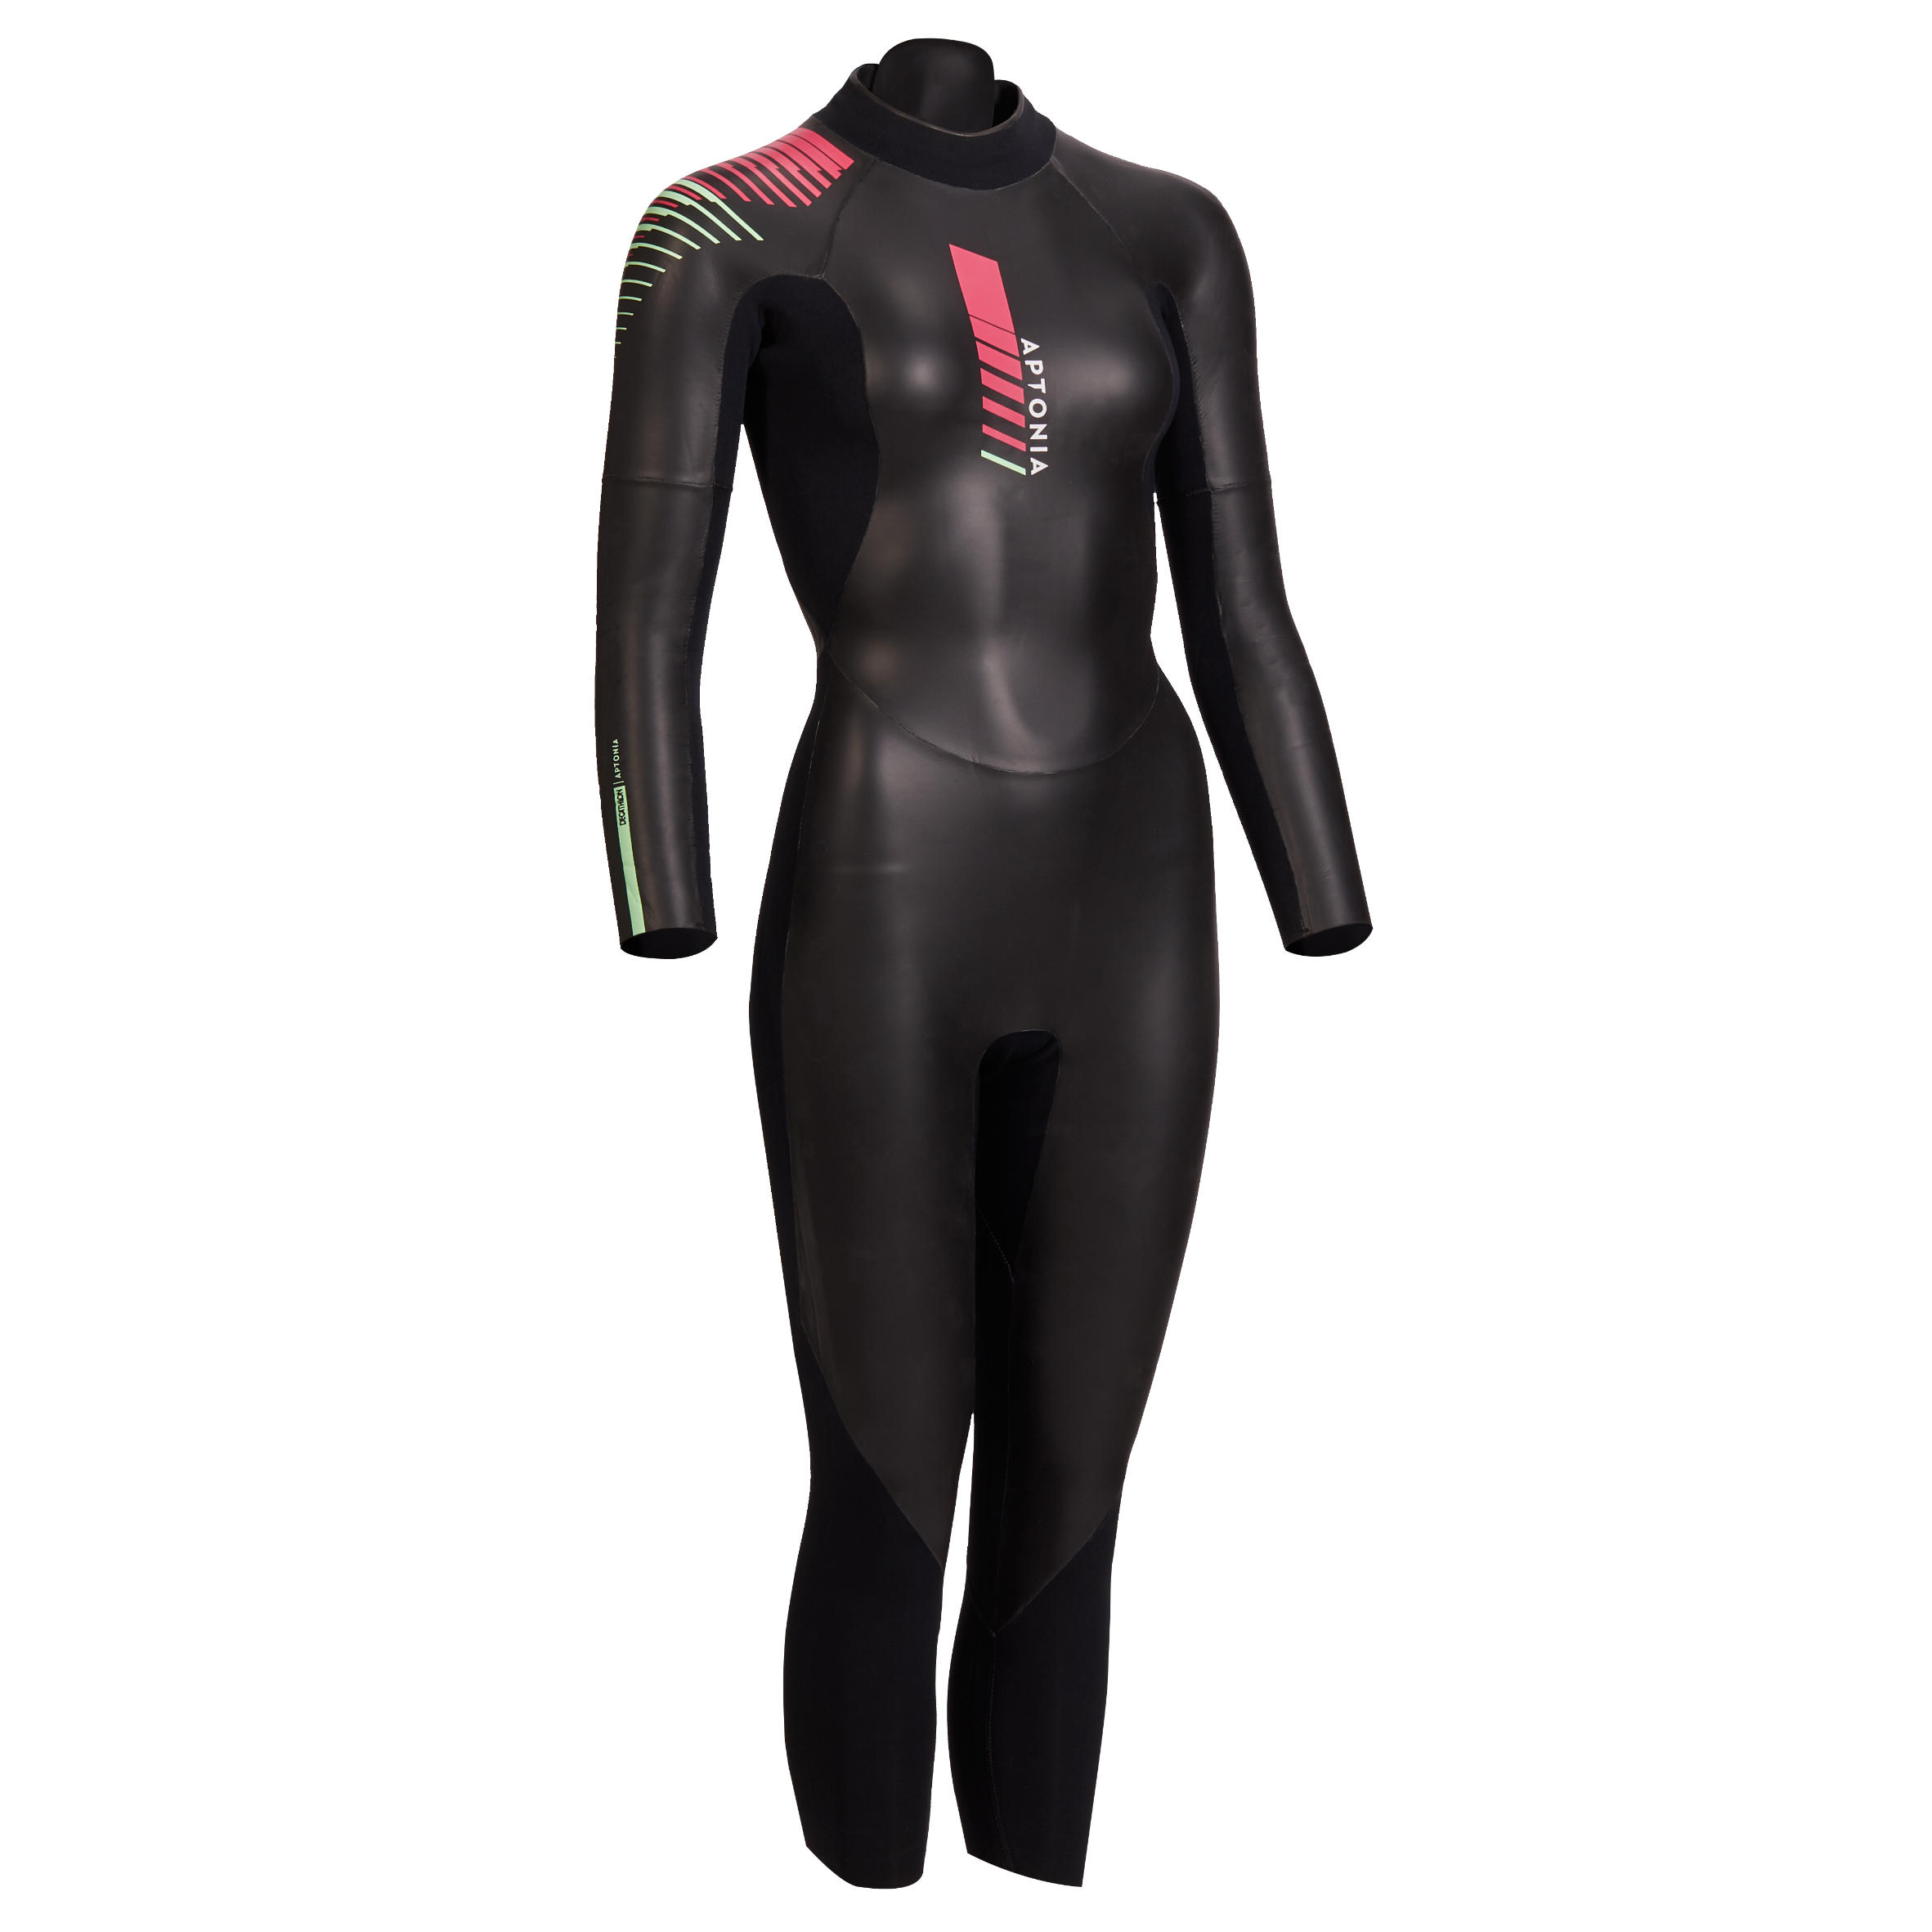 Combinezon neopren Triatlon